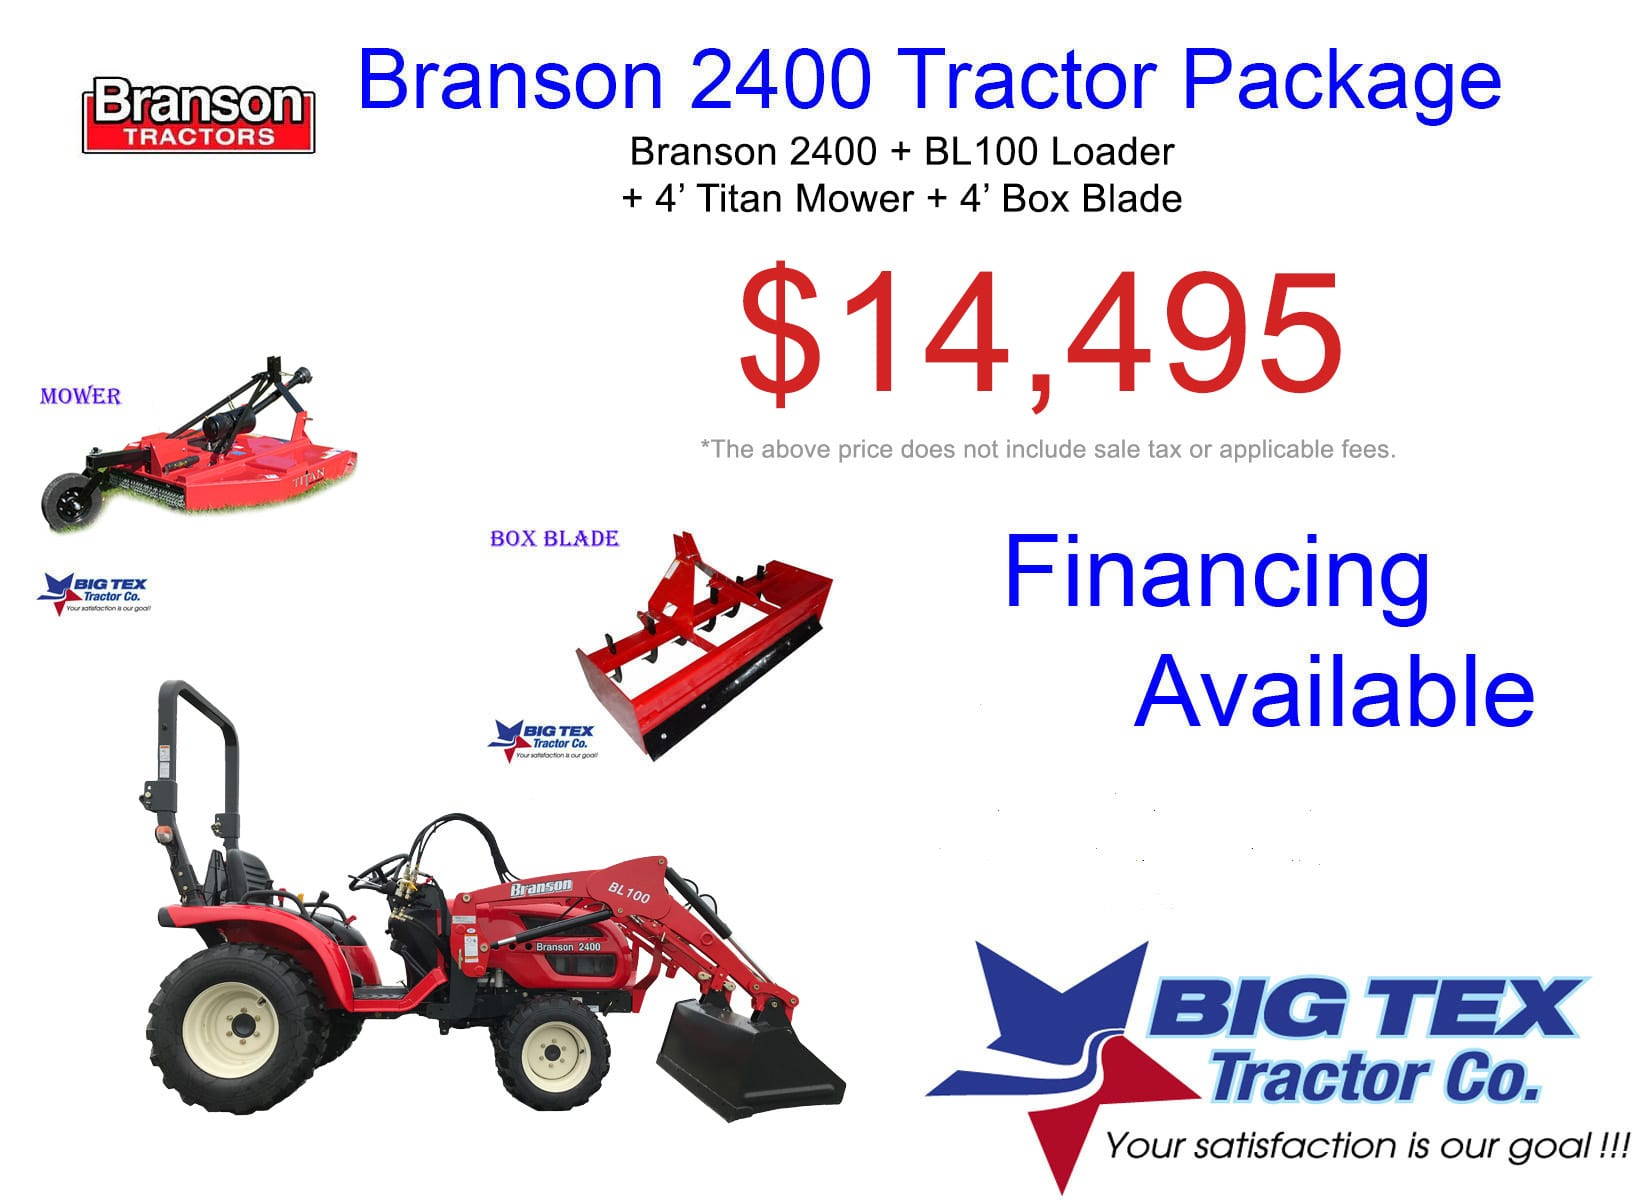 Tractors Packages Deals In Texas | Branson | Mahindra